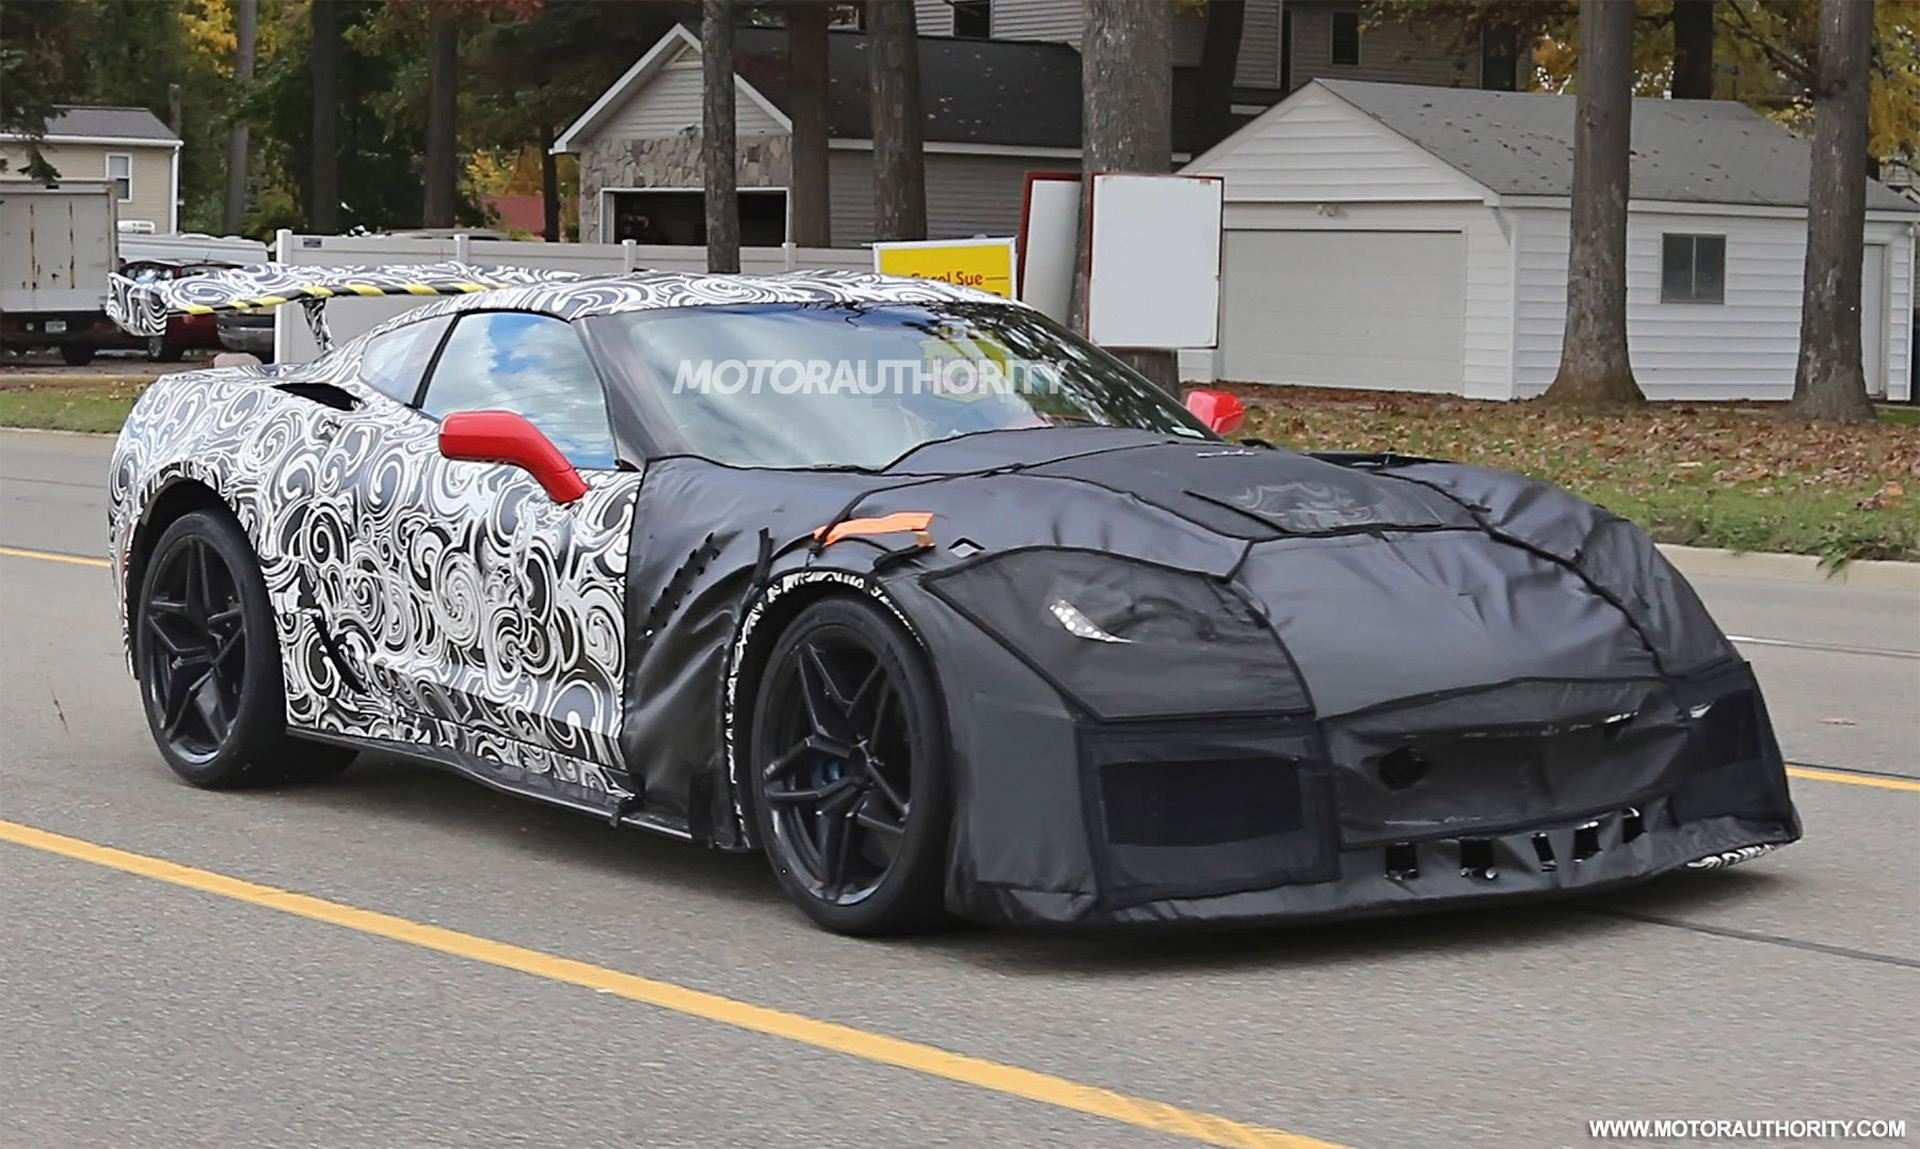 81 New New Chevrolet Corvette Zr1 2019 Spy Shoot Specs and Review with New Chevrolet Corvette Zr1 2019 Spy Shoot